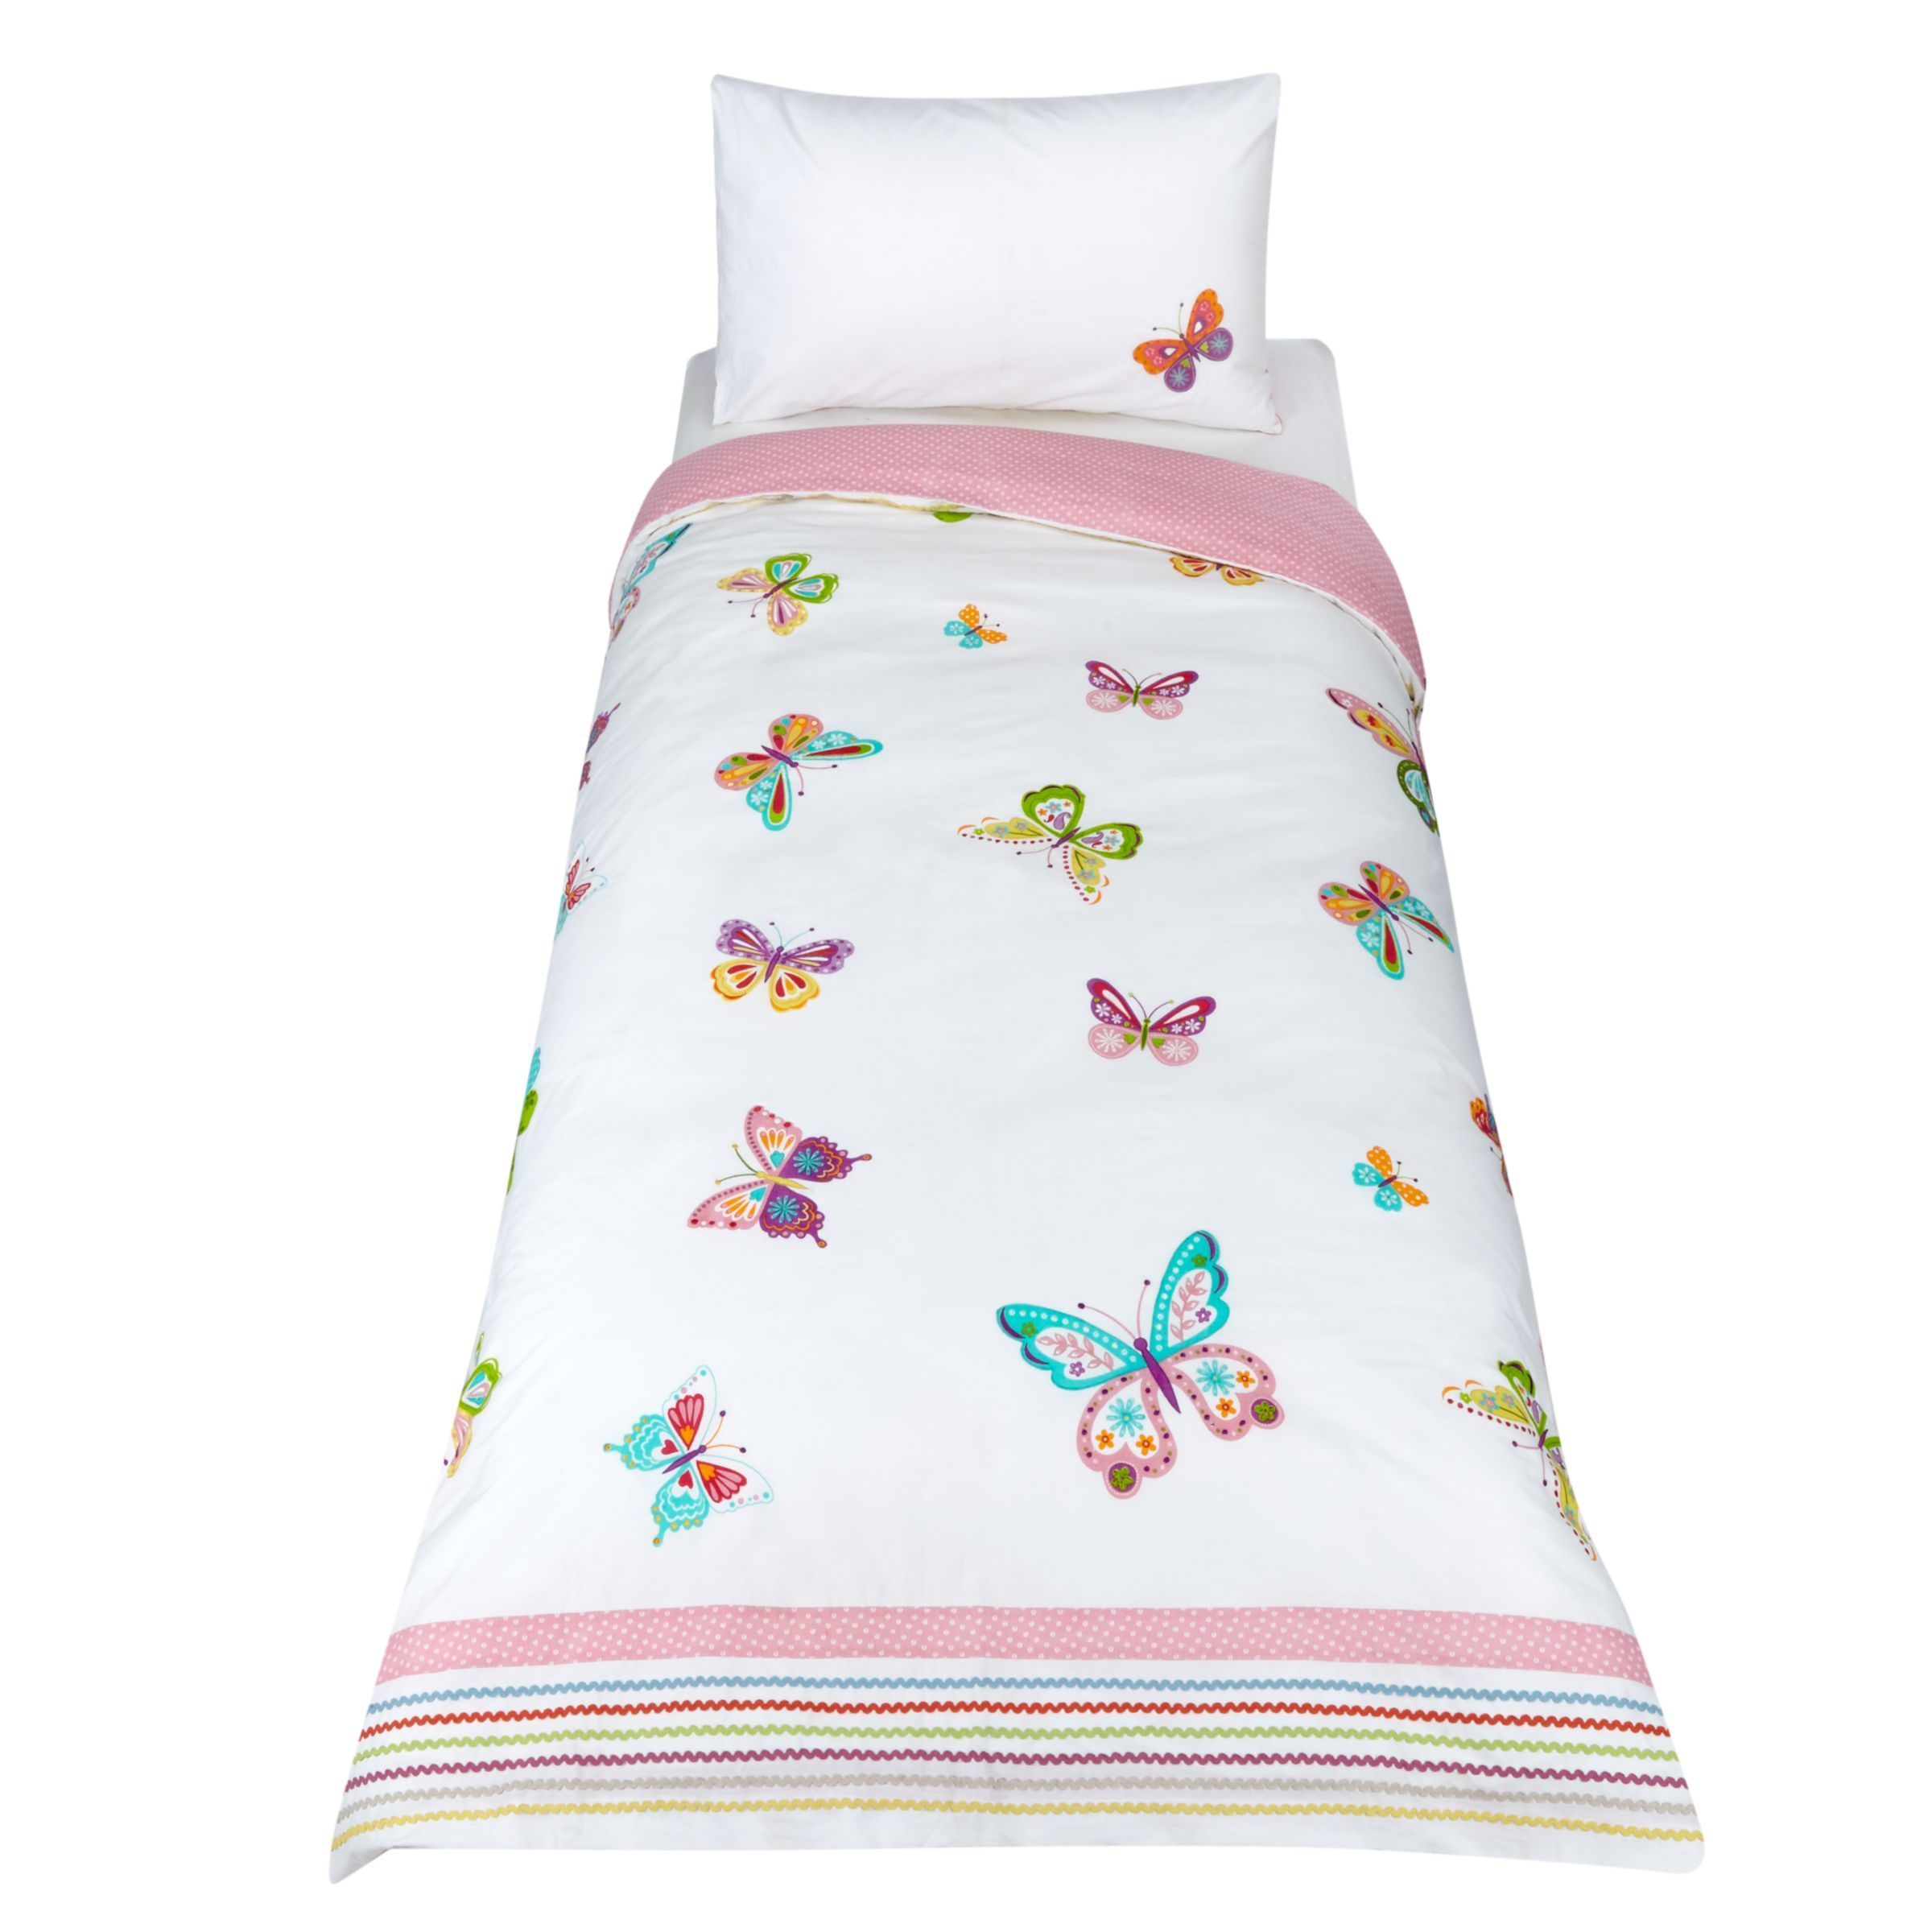 Little Home At John Lewis Butterfly Embroidered Duvet